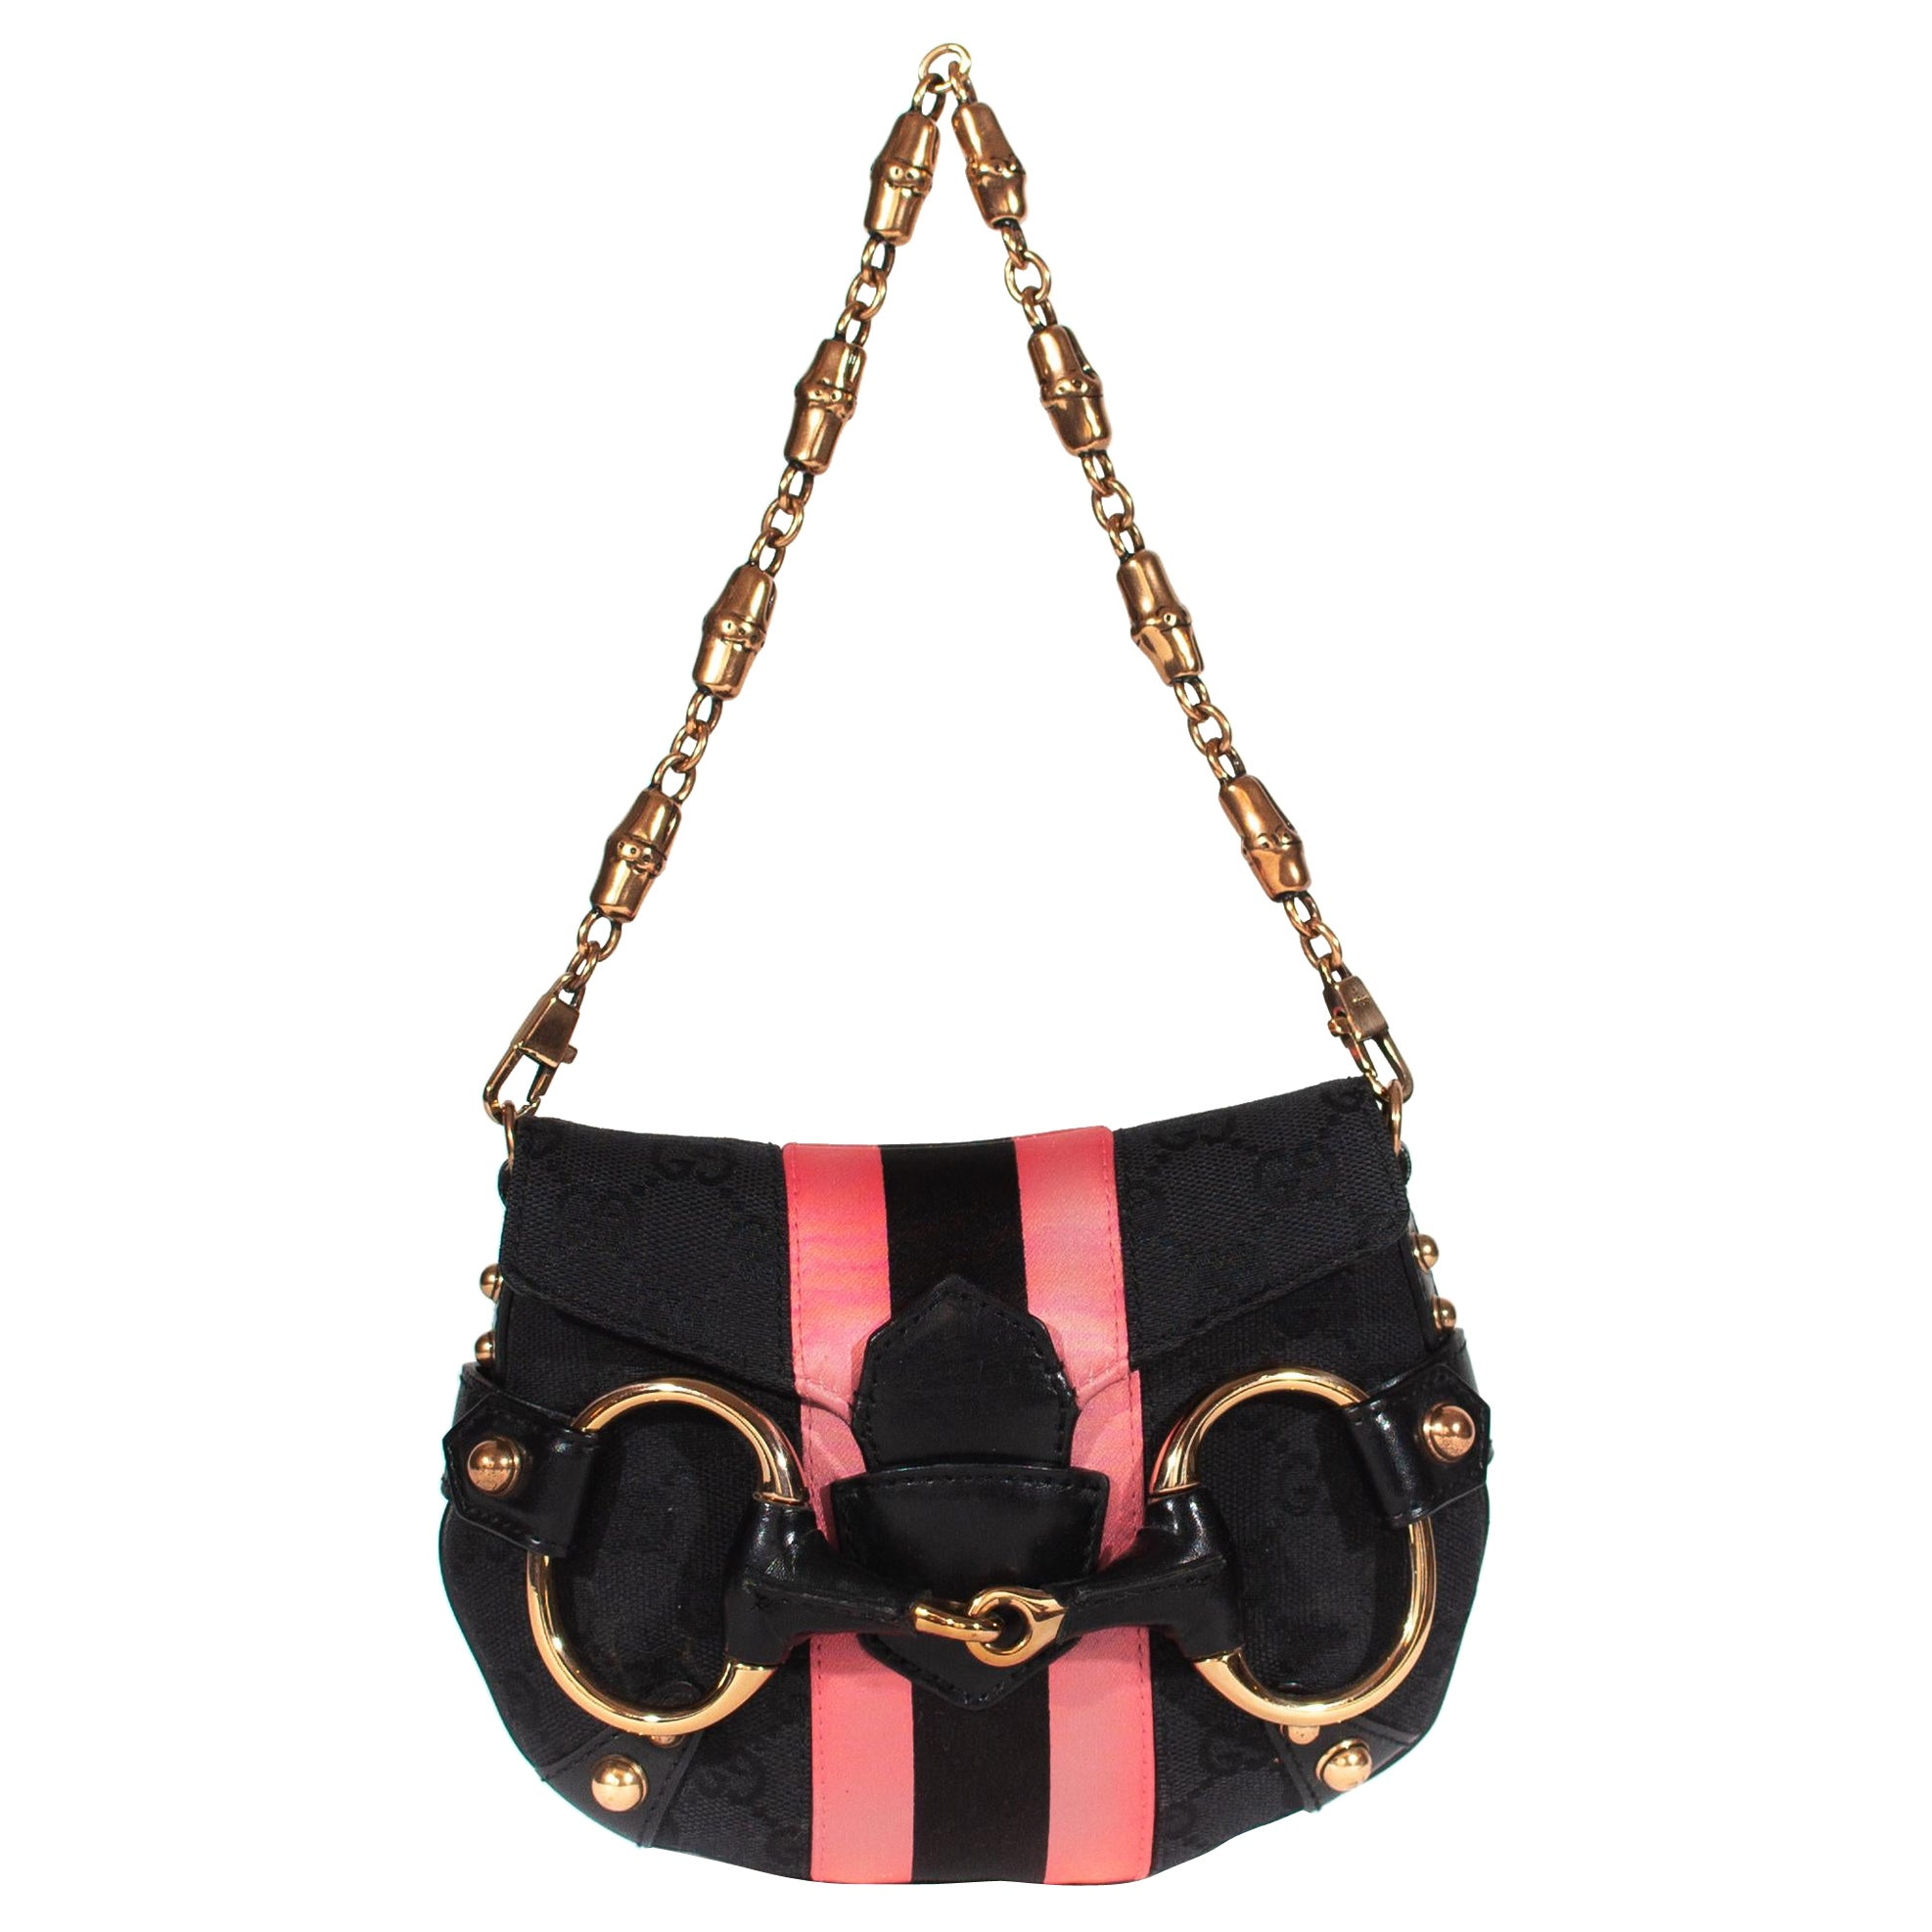 S/S 2004 Gucci by Tom Ford Black GG Horsebit Mini Evening Bag with Pink Stripe